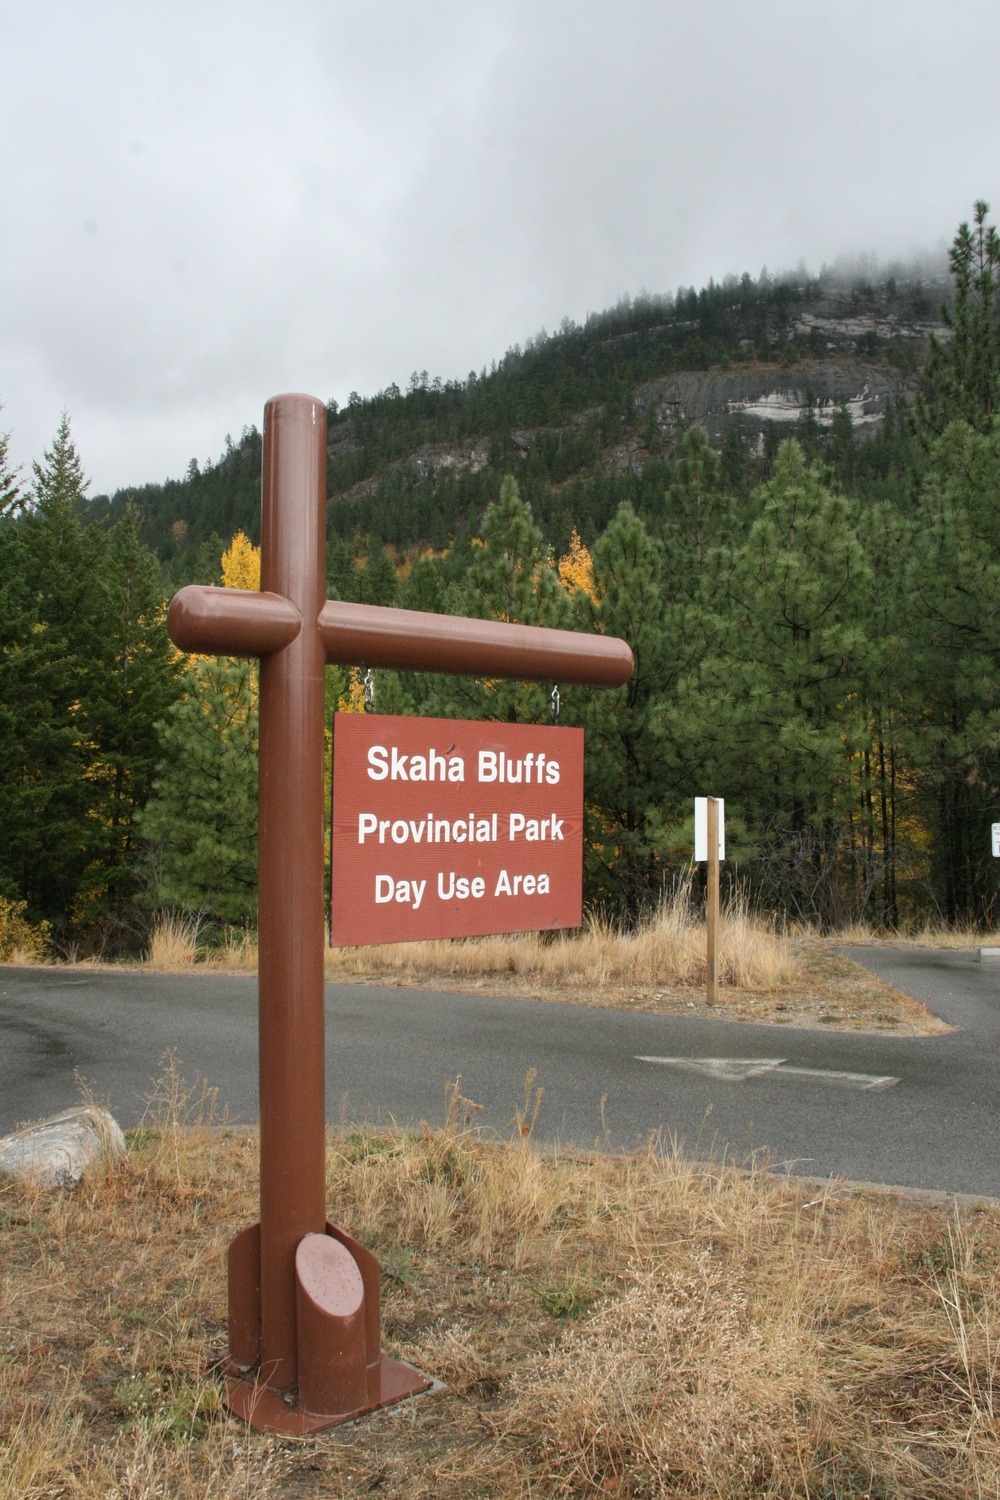 Skaha Bluffs provincial park surrounds the vineyard, protecting it from expansion or outside development.